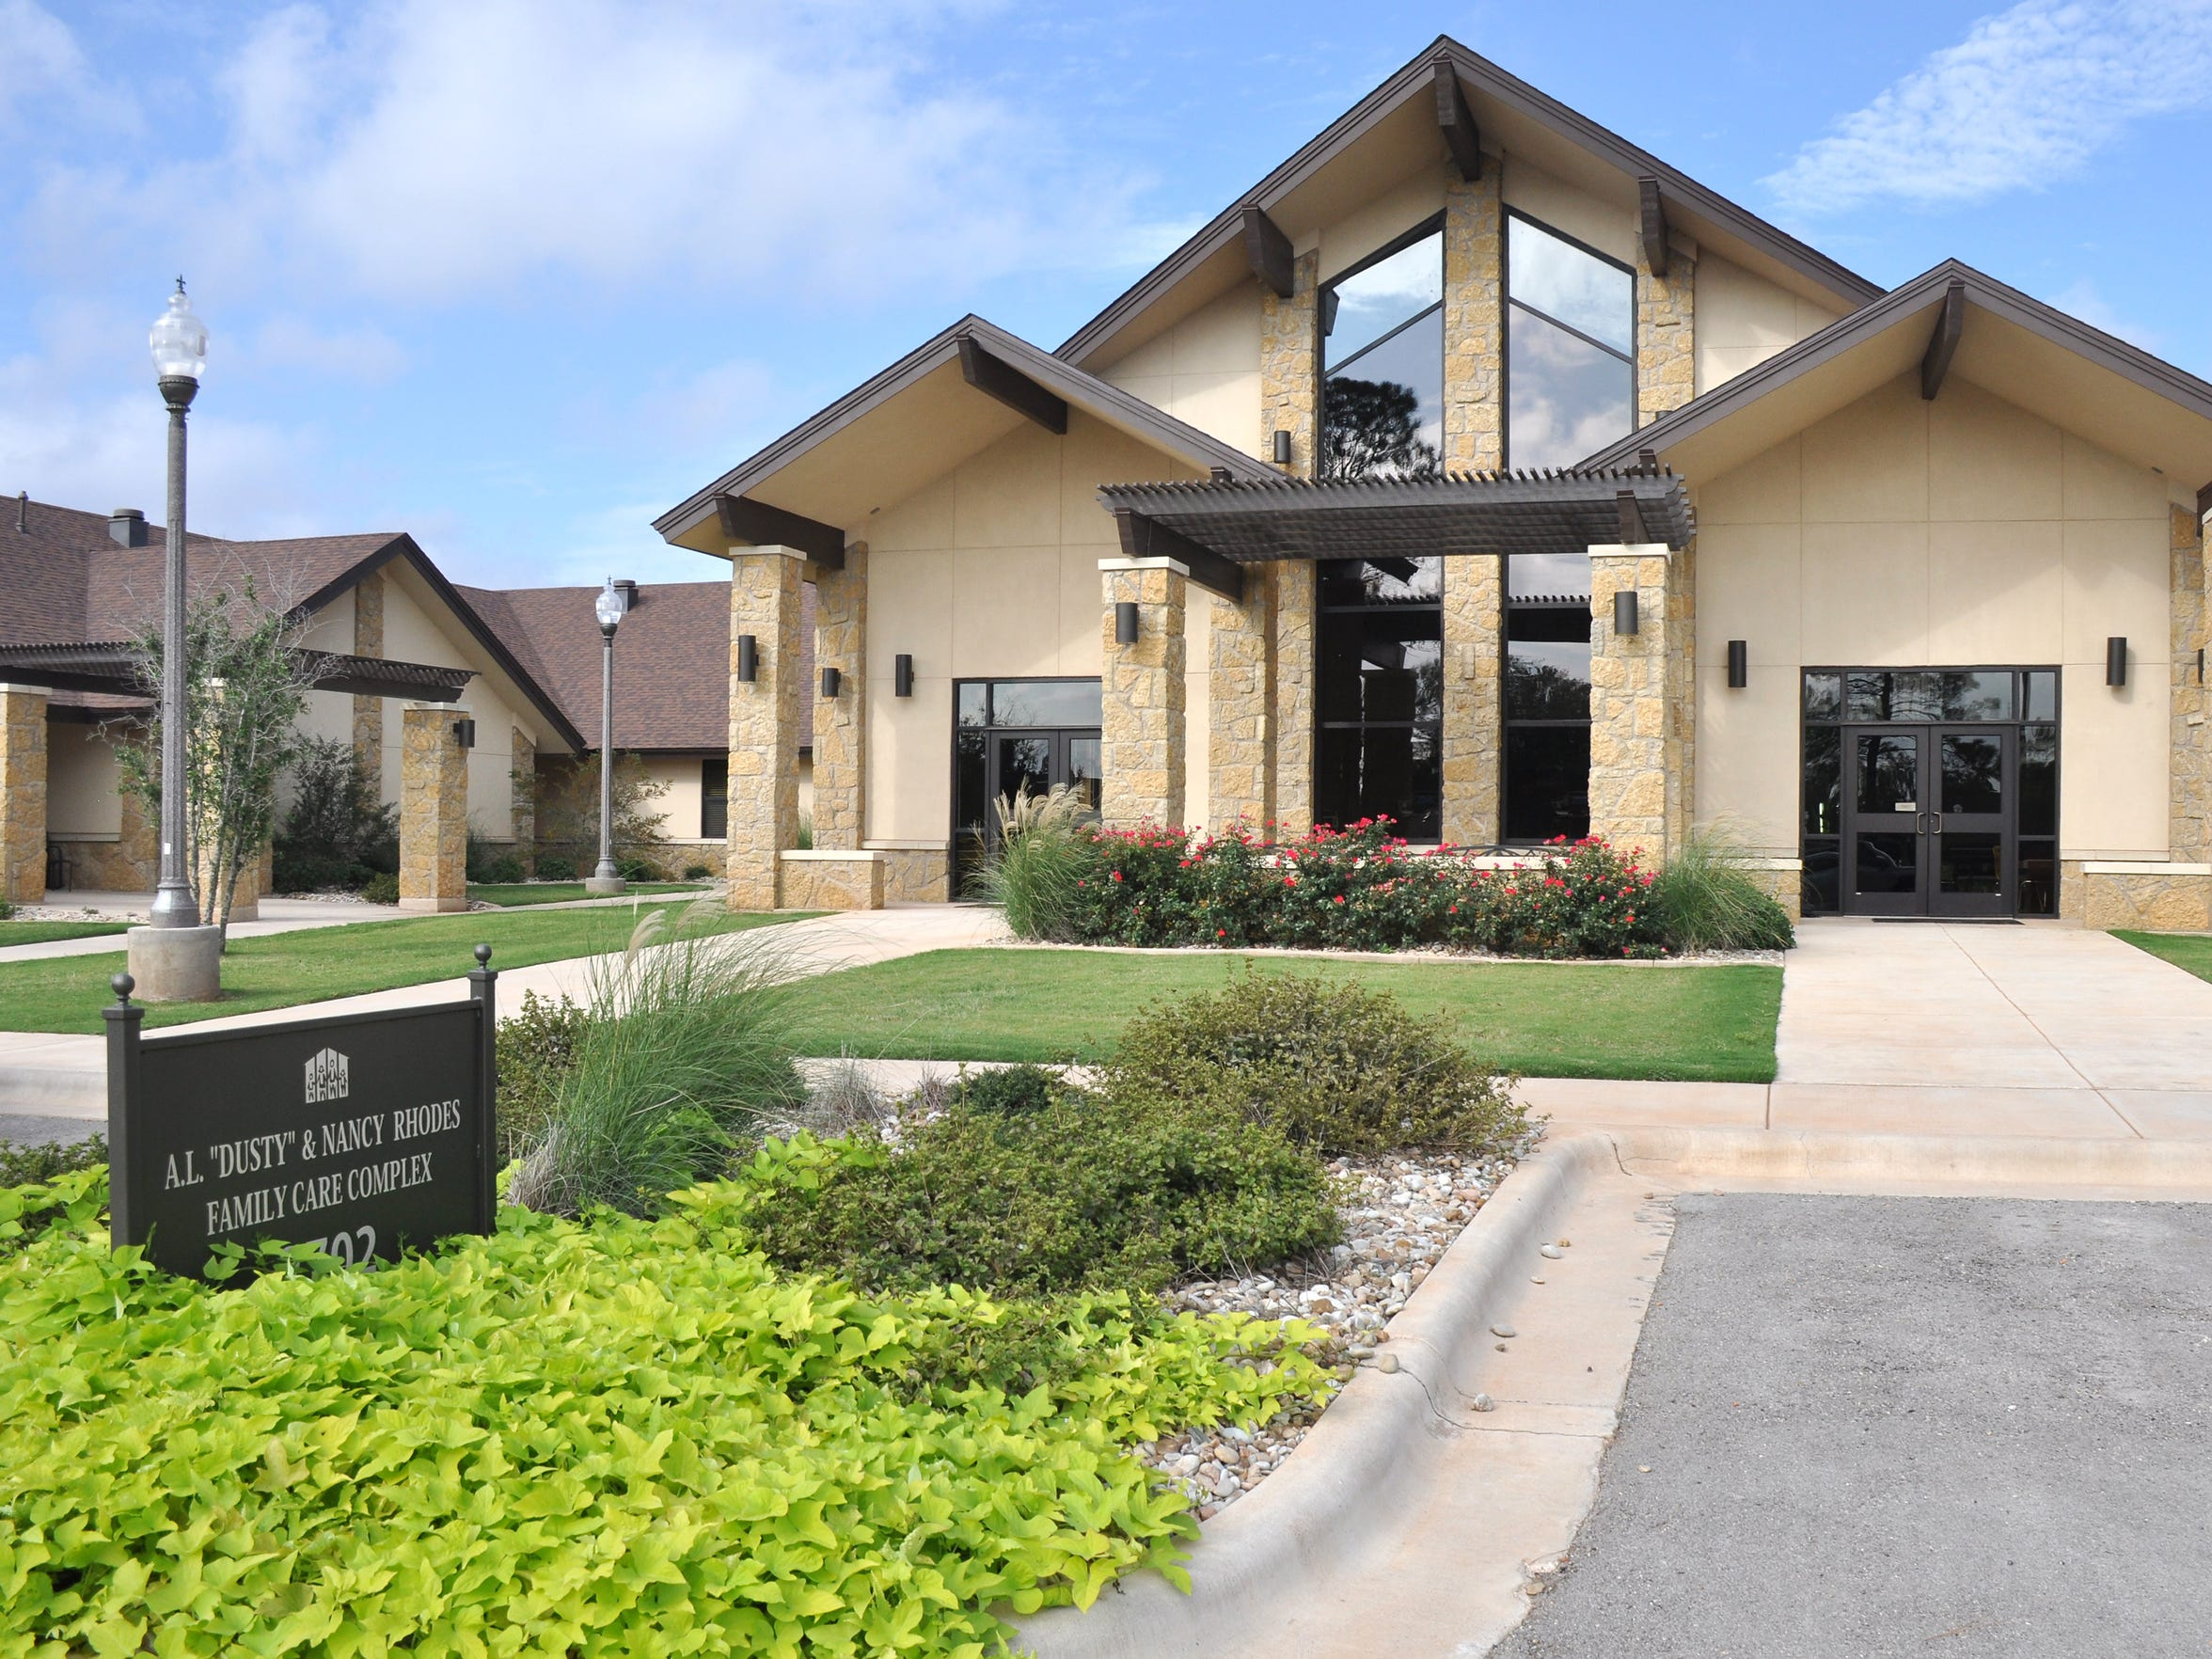 """The A.L. """"Dusty"""" and Nancy Rhodes Family Care Complex opened at Hendrick Home for Children in 2016 to provide living quarters for single moms and their children."""